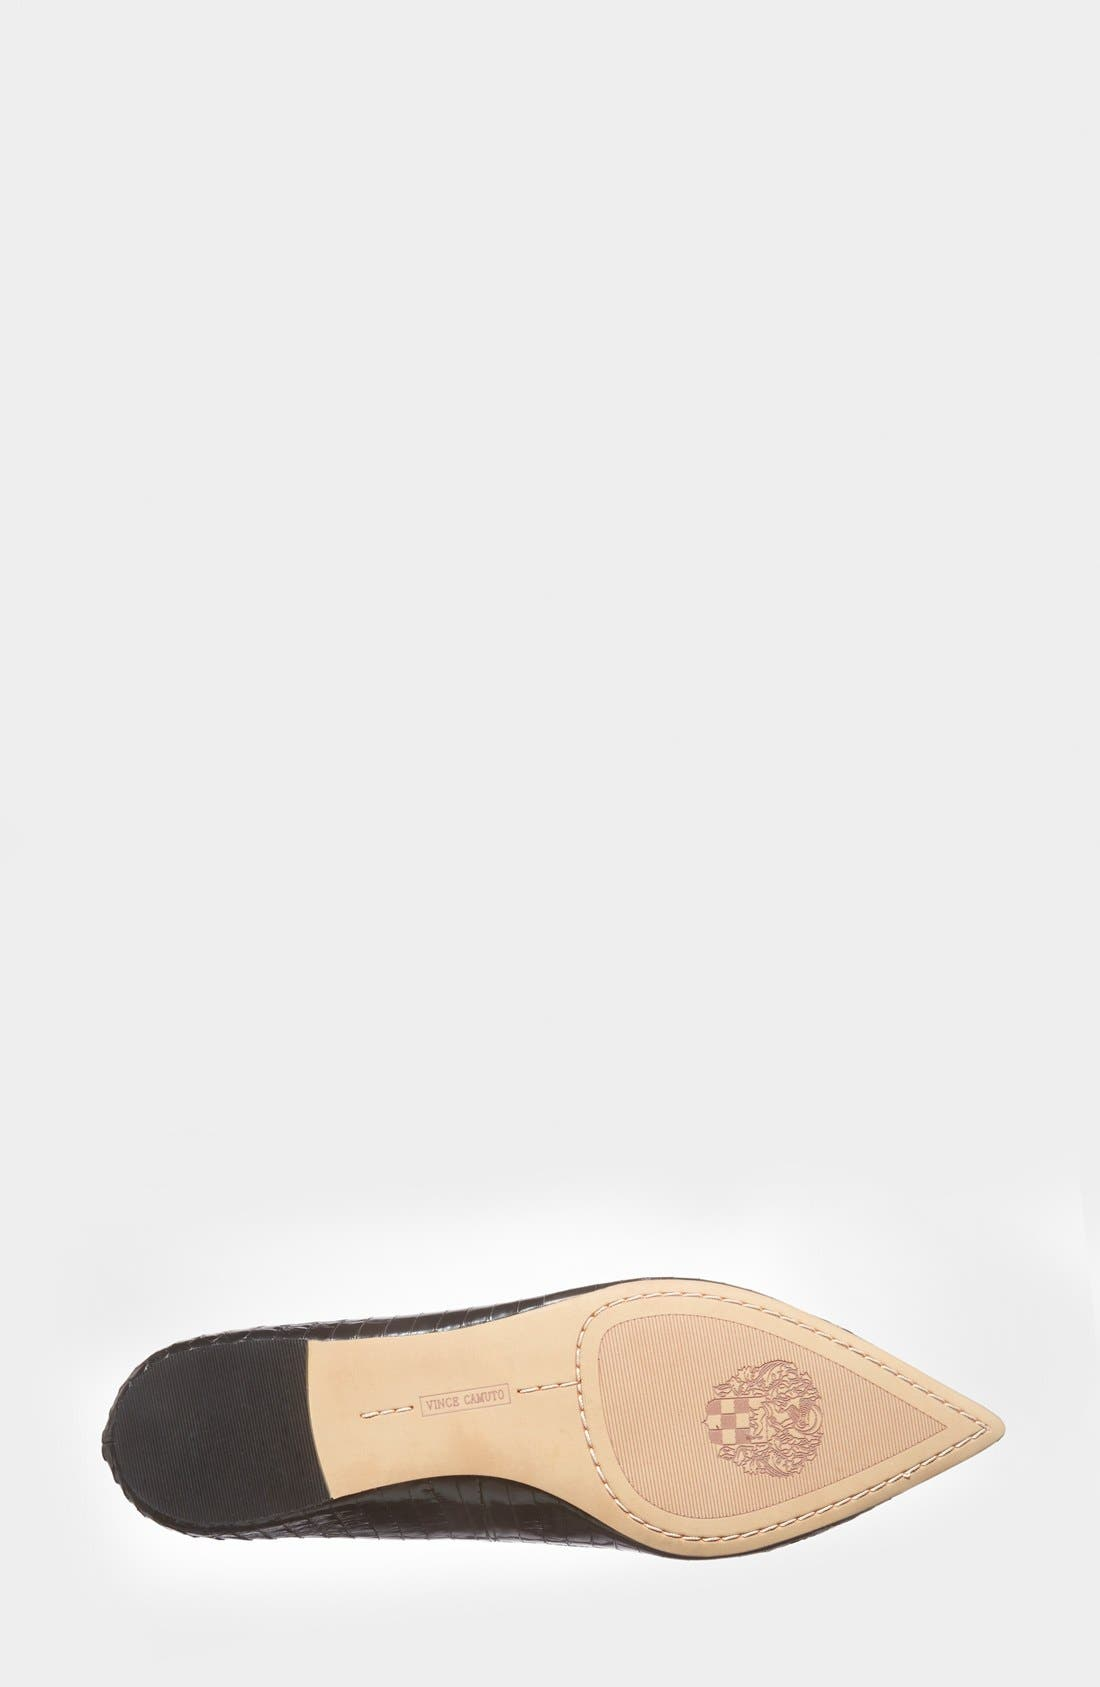 VINCE CAMUTO, 'Empa' Pointy Toe Loafer Flat, Alternate thumbnail 2, color, 001